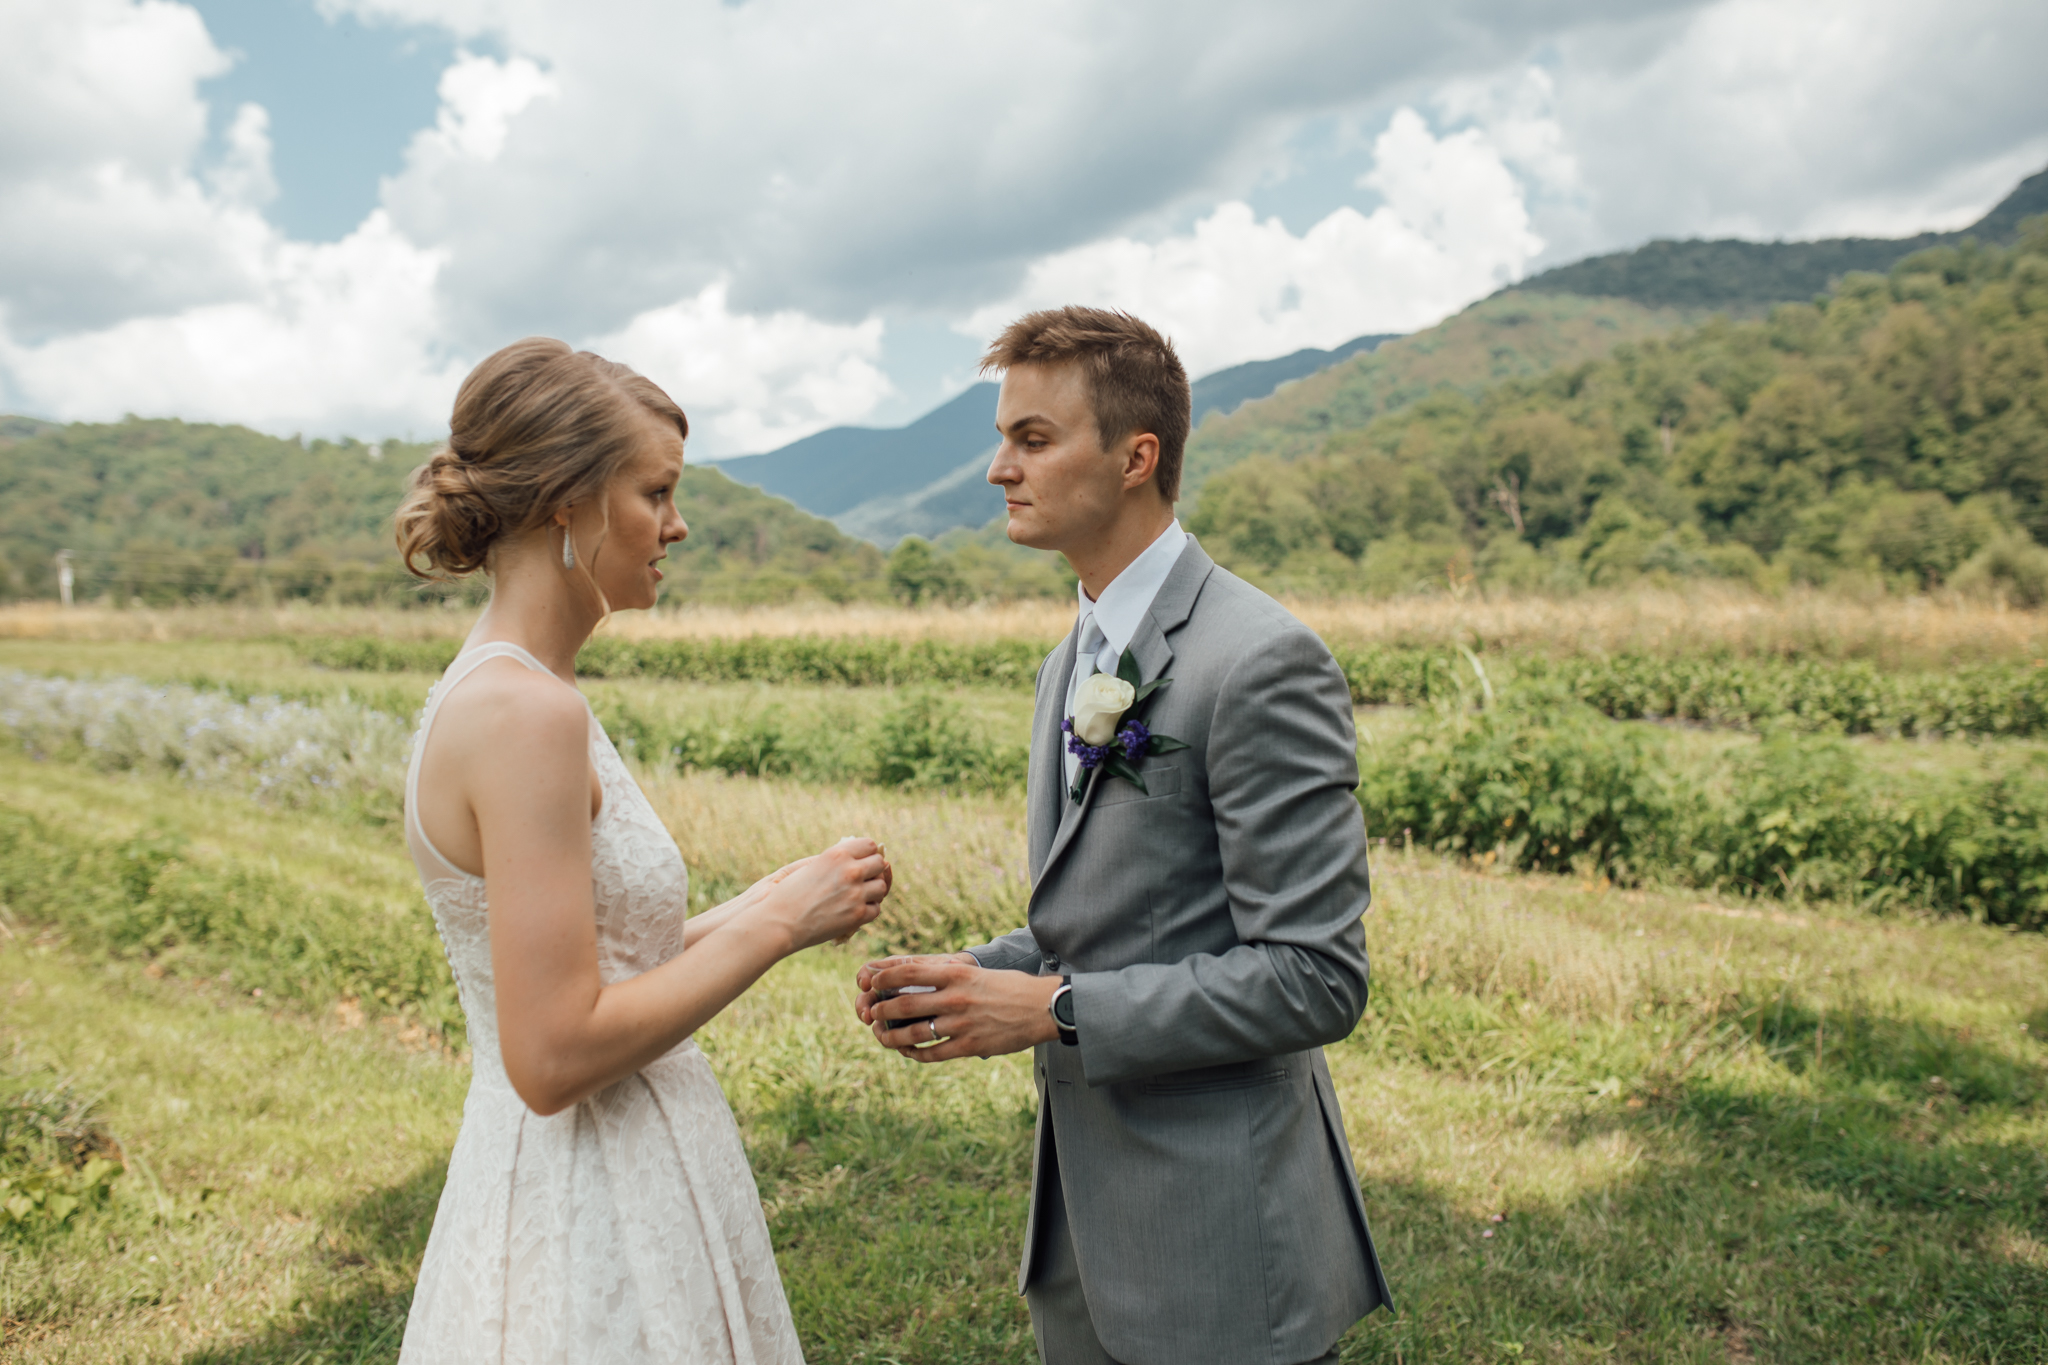 asheville-wedding-photographers-TheBasilicaofSt.Lawrence-IvyCreekFamilyFarm-thewarmtharoundyou (20 of 52).jpg